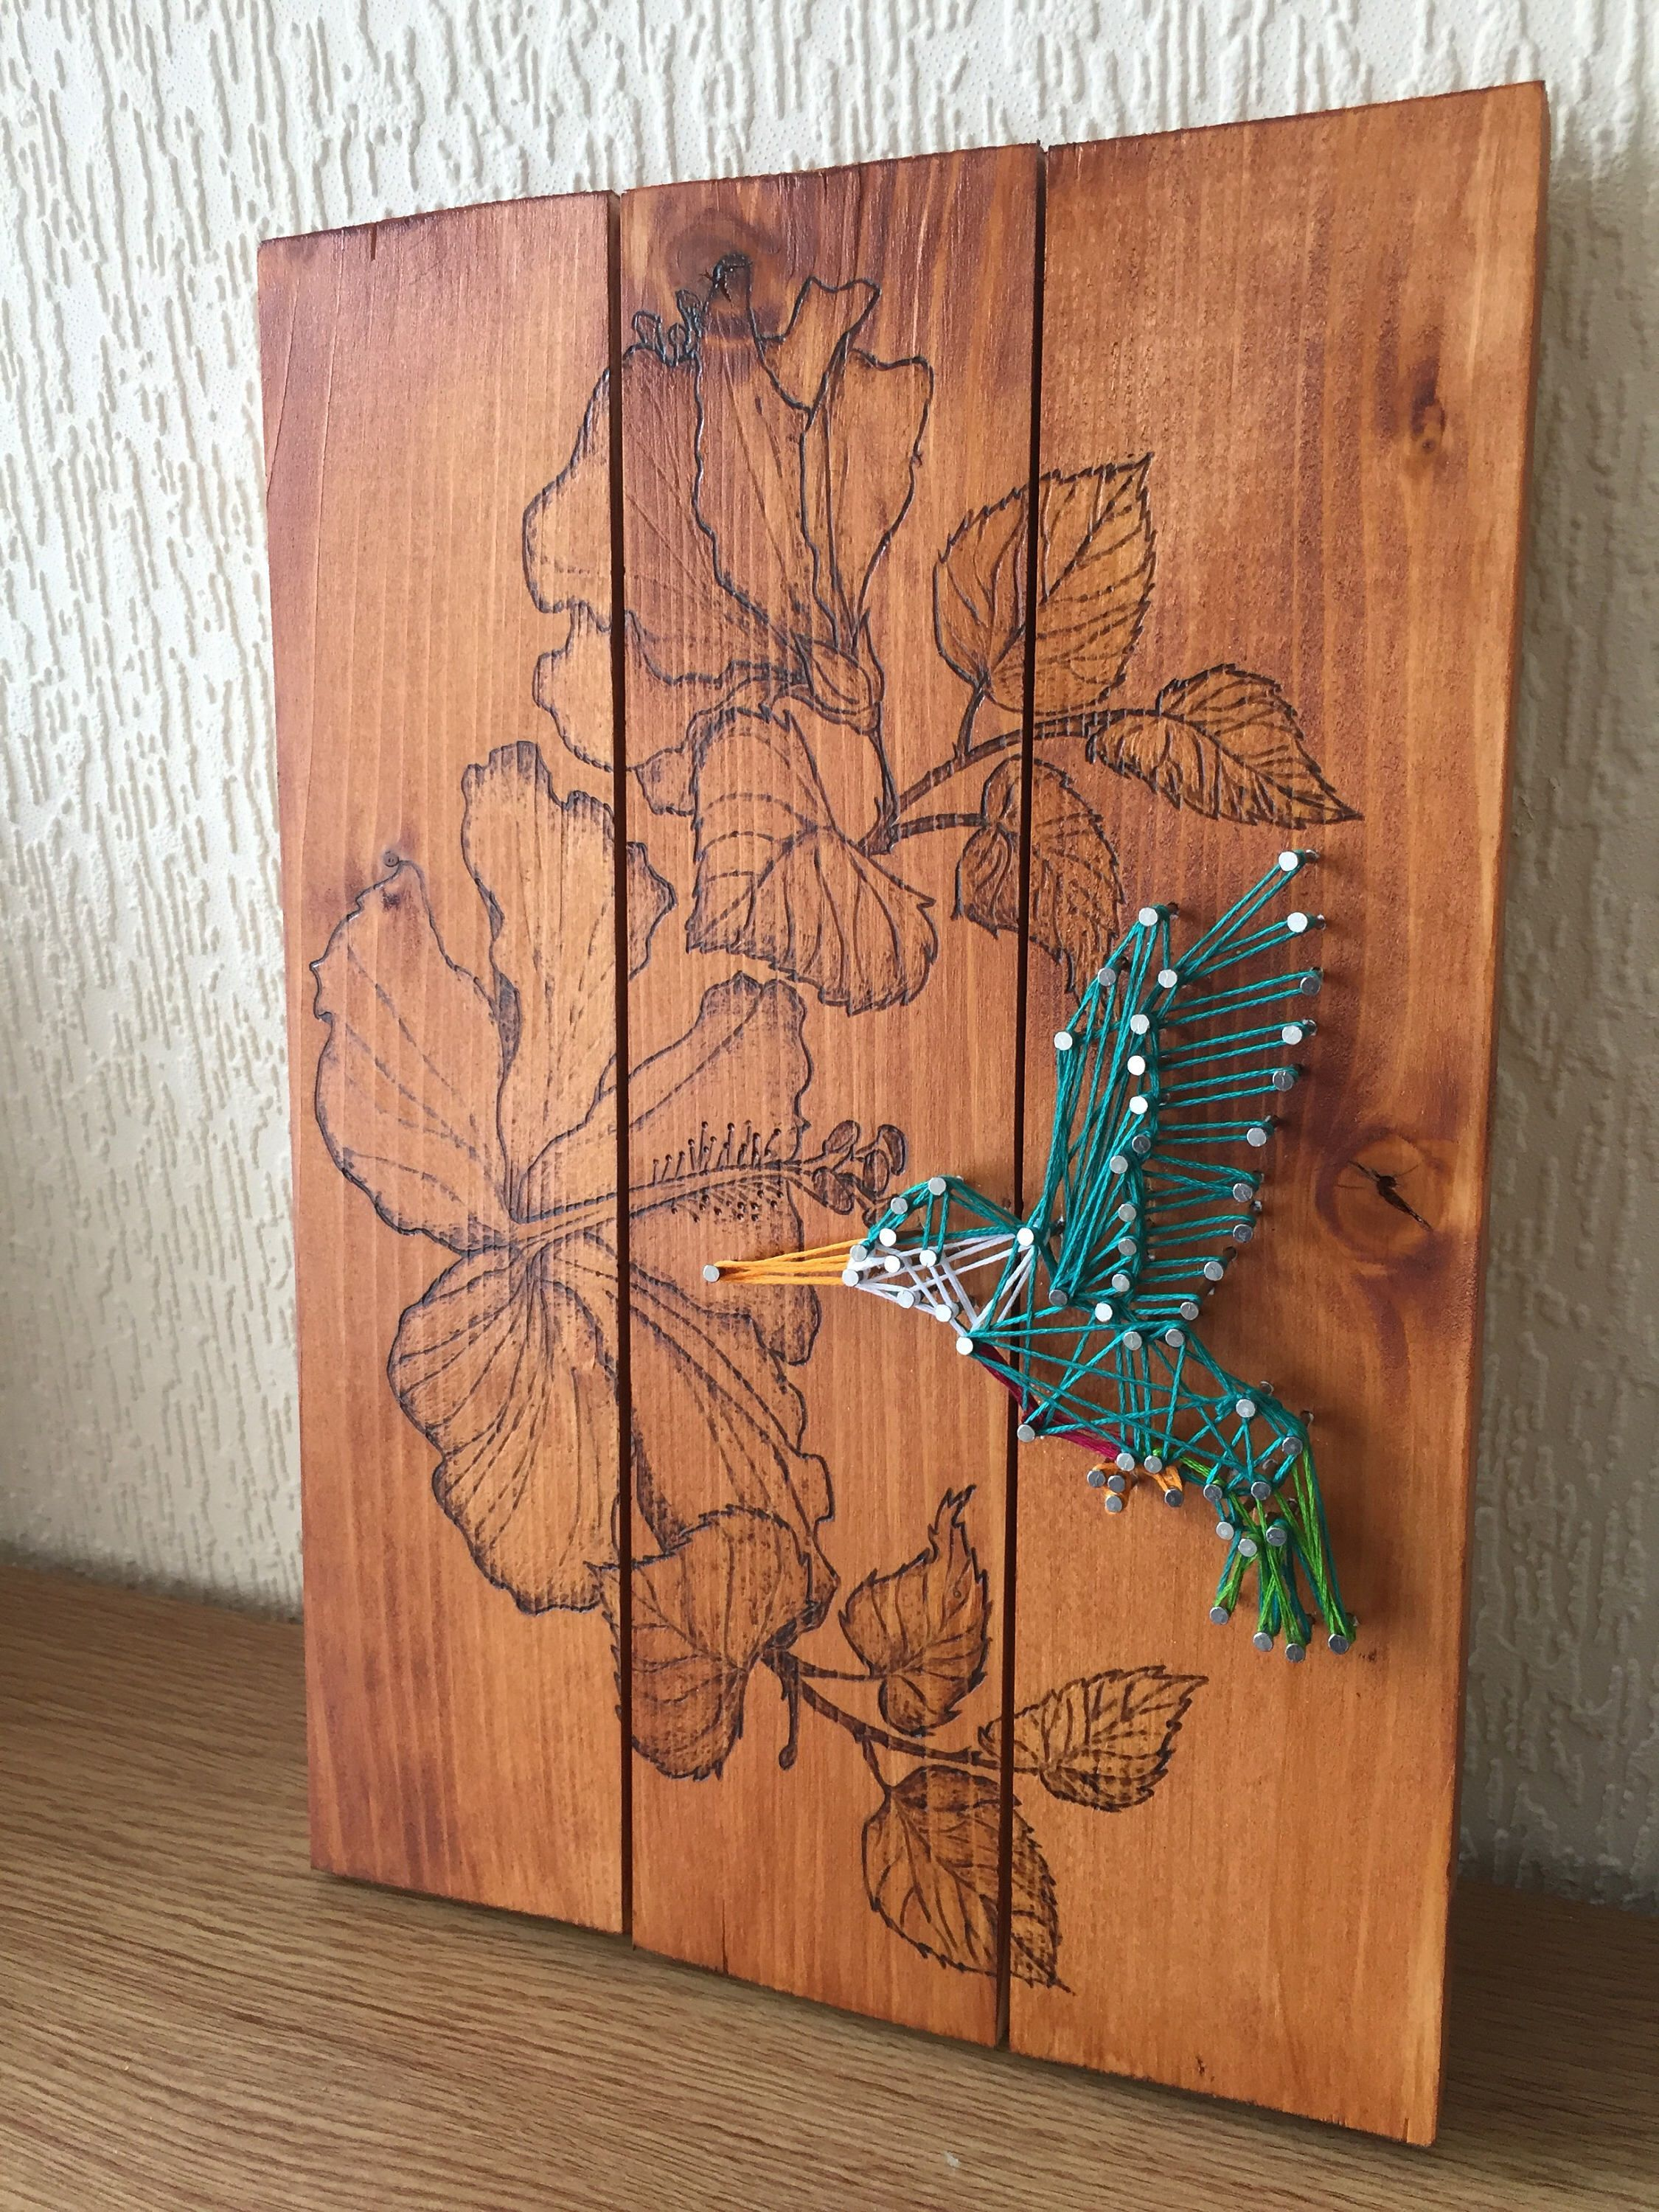 Hummingbird and Hibiscus String Art and Wood Burning #stringart